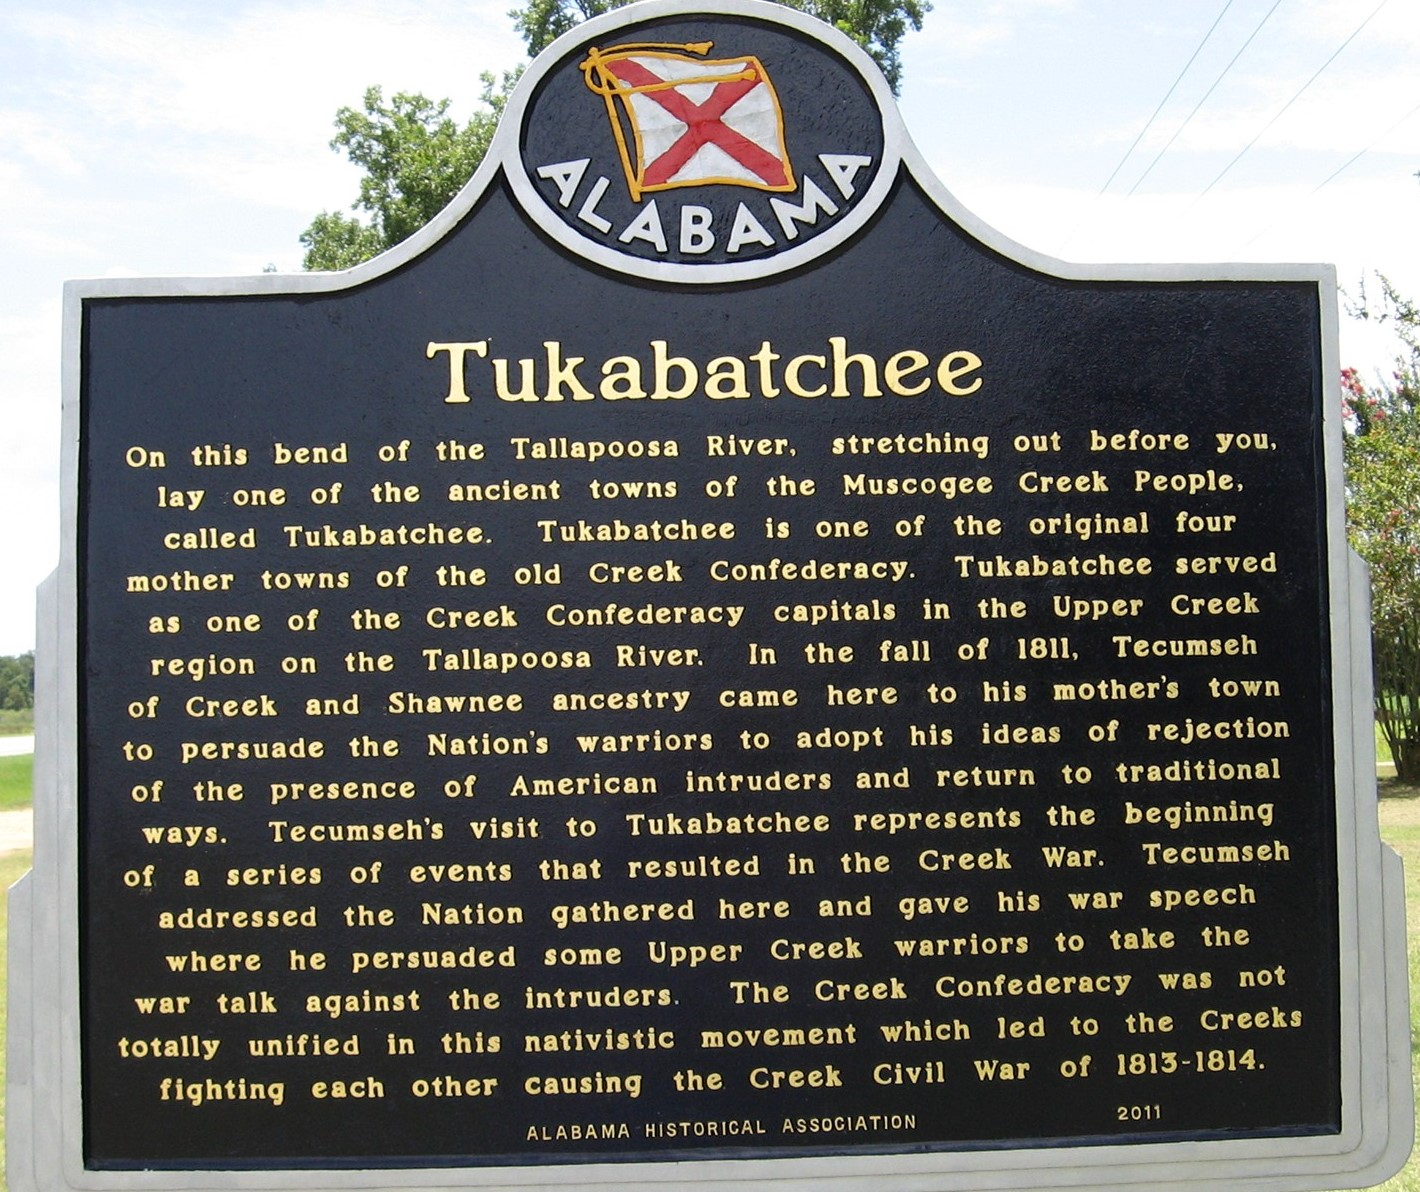 PATRON + Tuckabatchee and Tallassee were once two rival, thriving towns on the Tallapoosa River